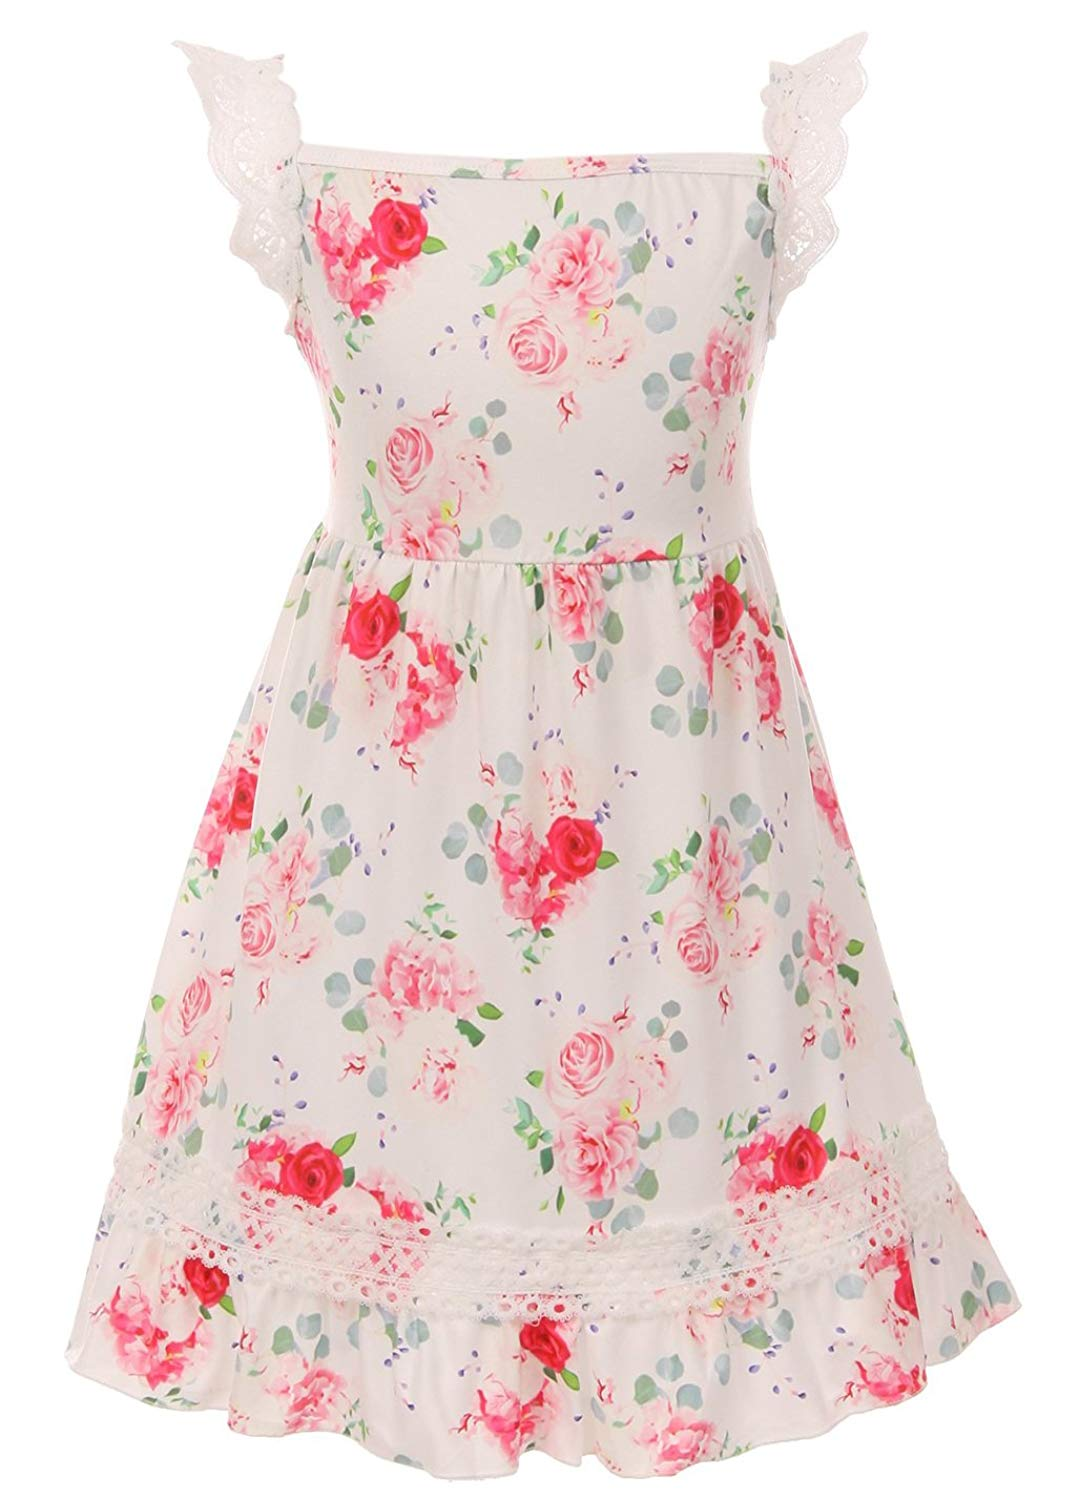 8d14cf24520 Get Quotations · Little Girls Lovely Sleeveless Lace Floral Ruffle Party Flower  Girl Dress 2T-8